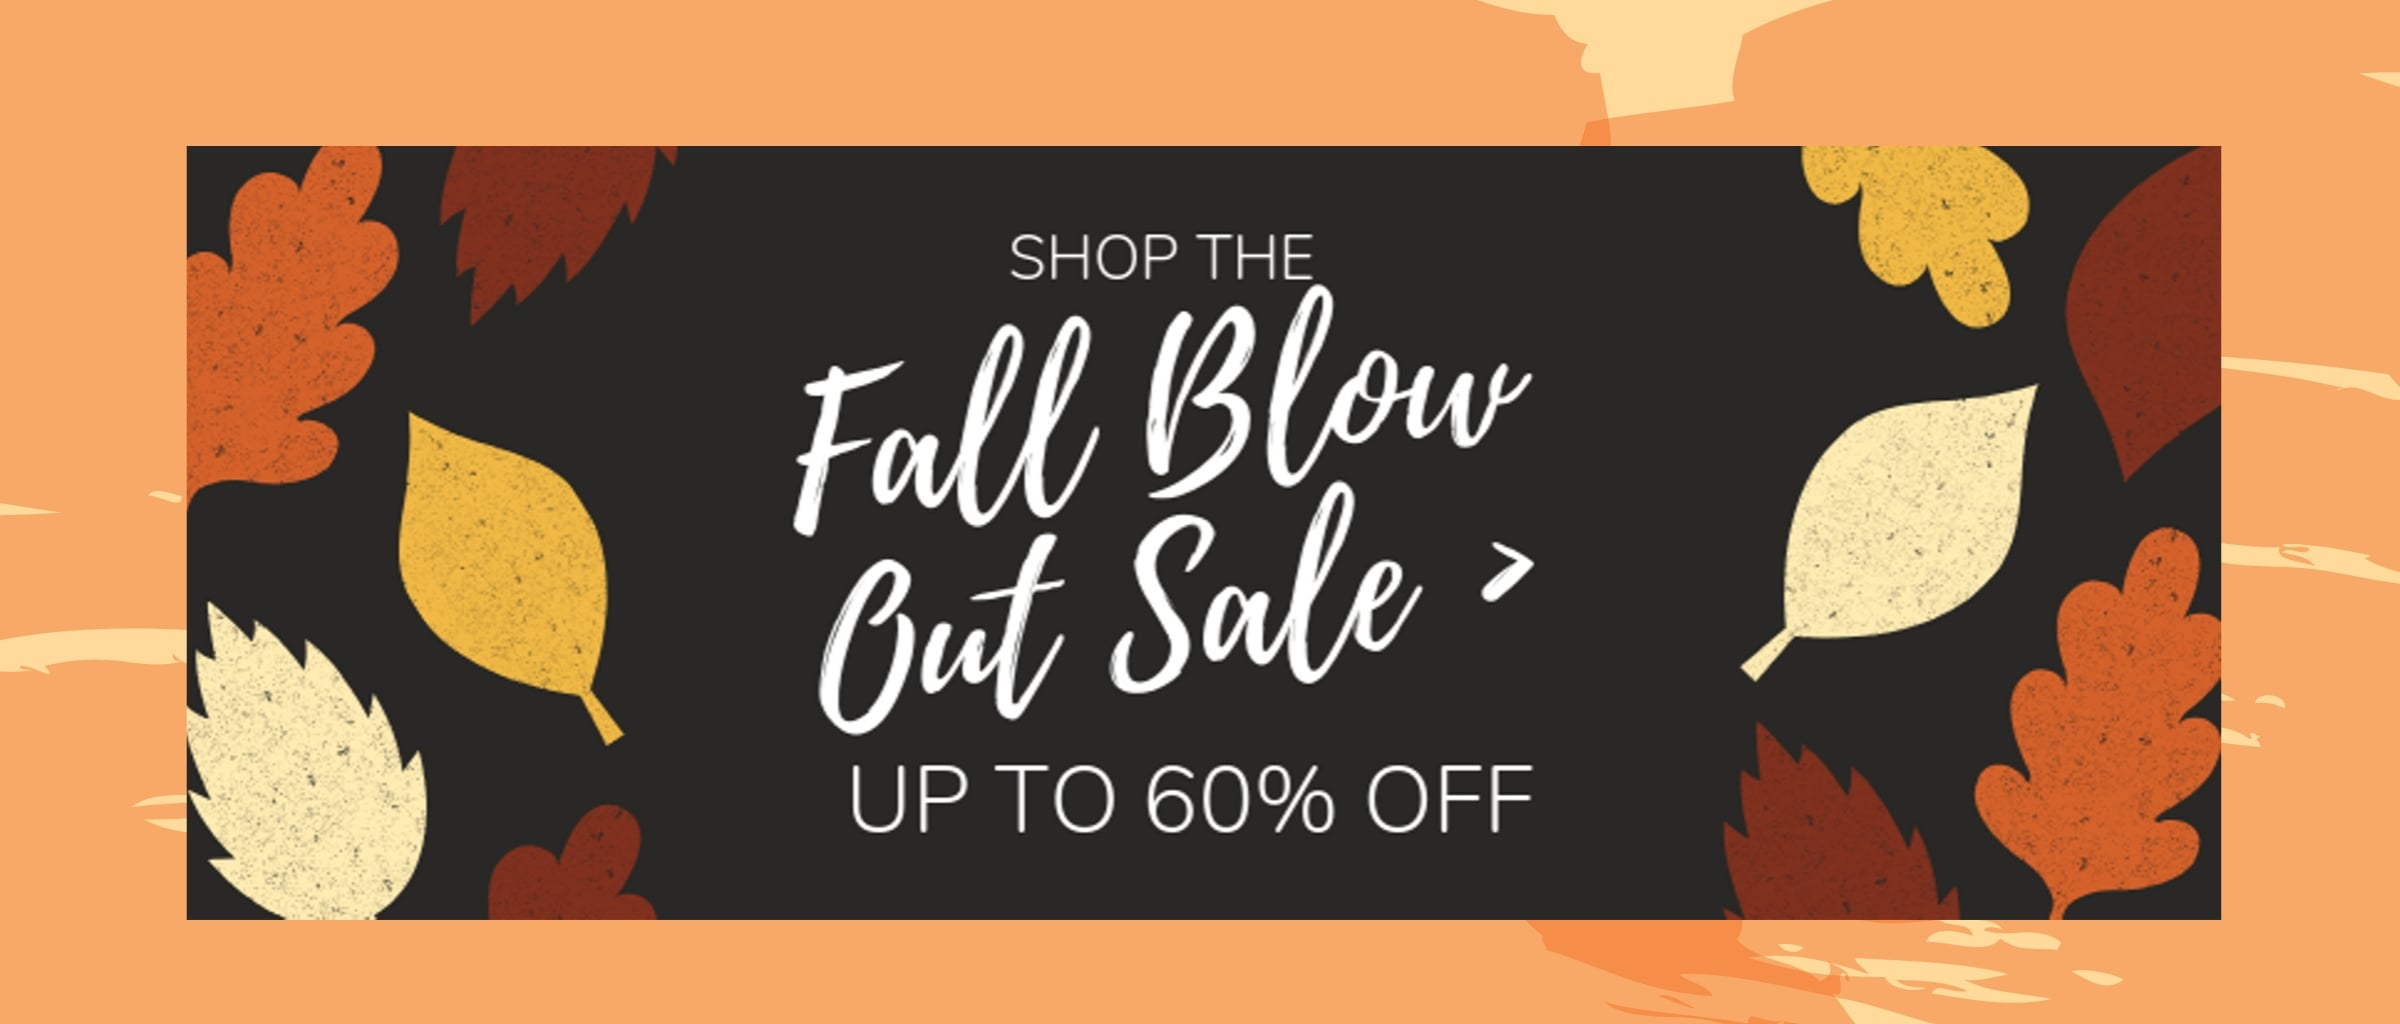 Shop the fall blow out sale